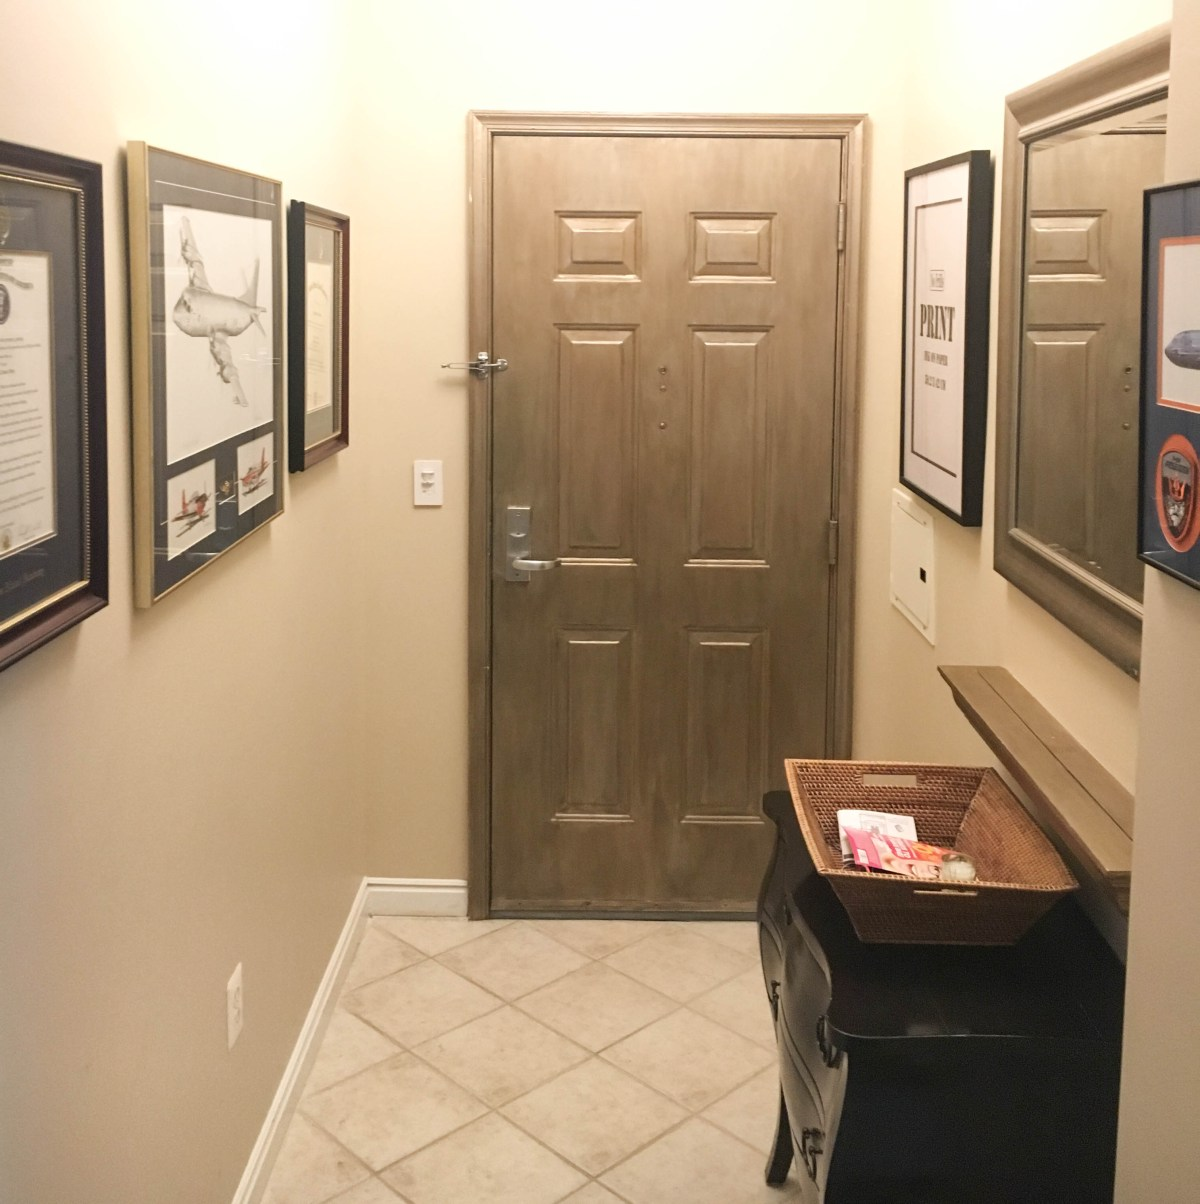 A before image of an apartment's front entryway without any Halloween decor.